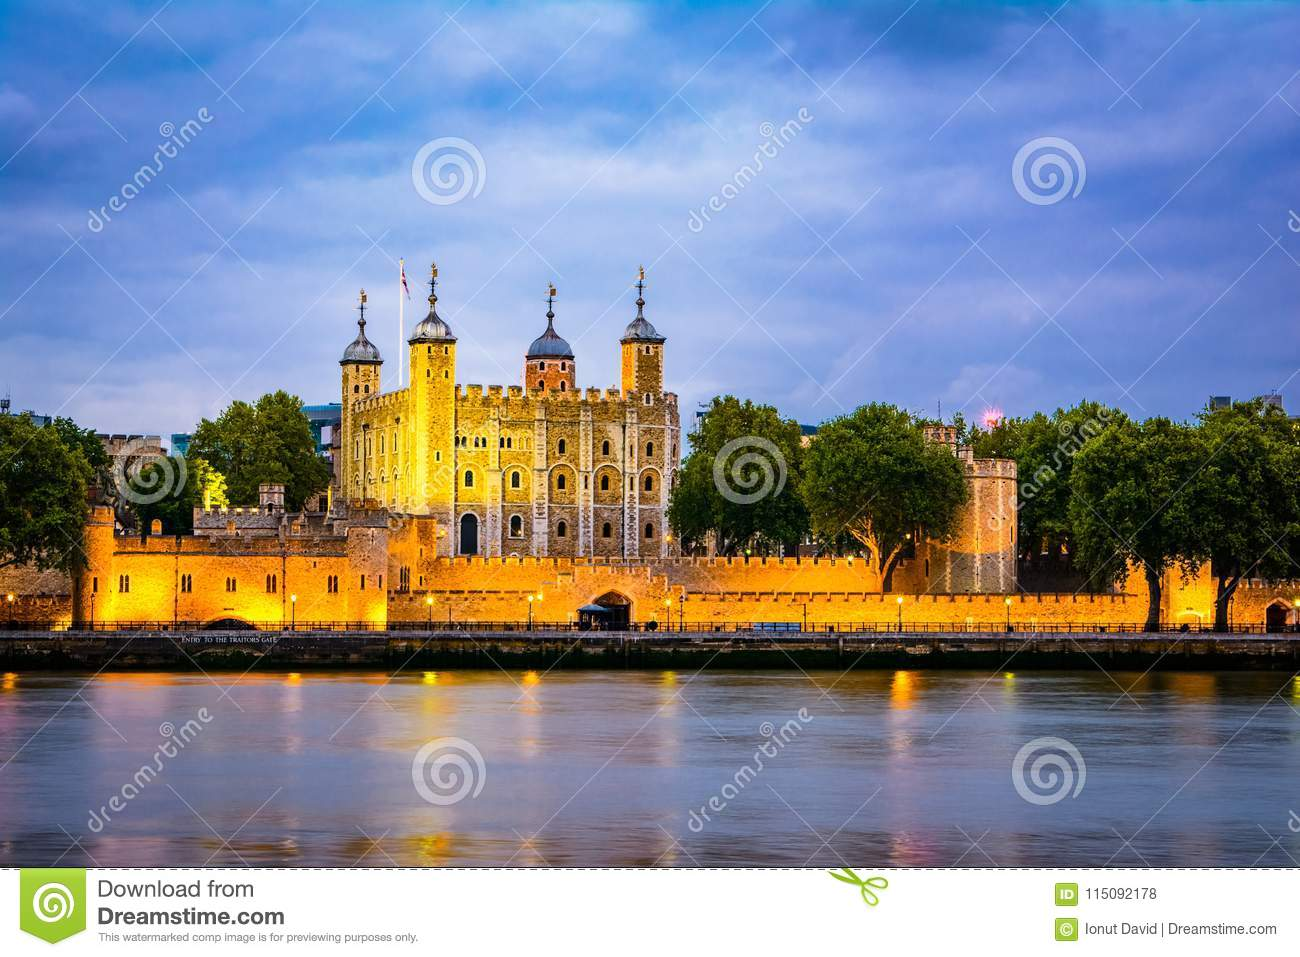 London, The United Kingdom of Great Britain: Night view of the Tower of London, UK